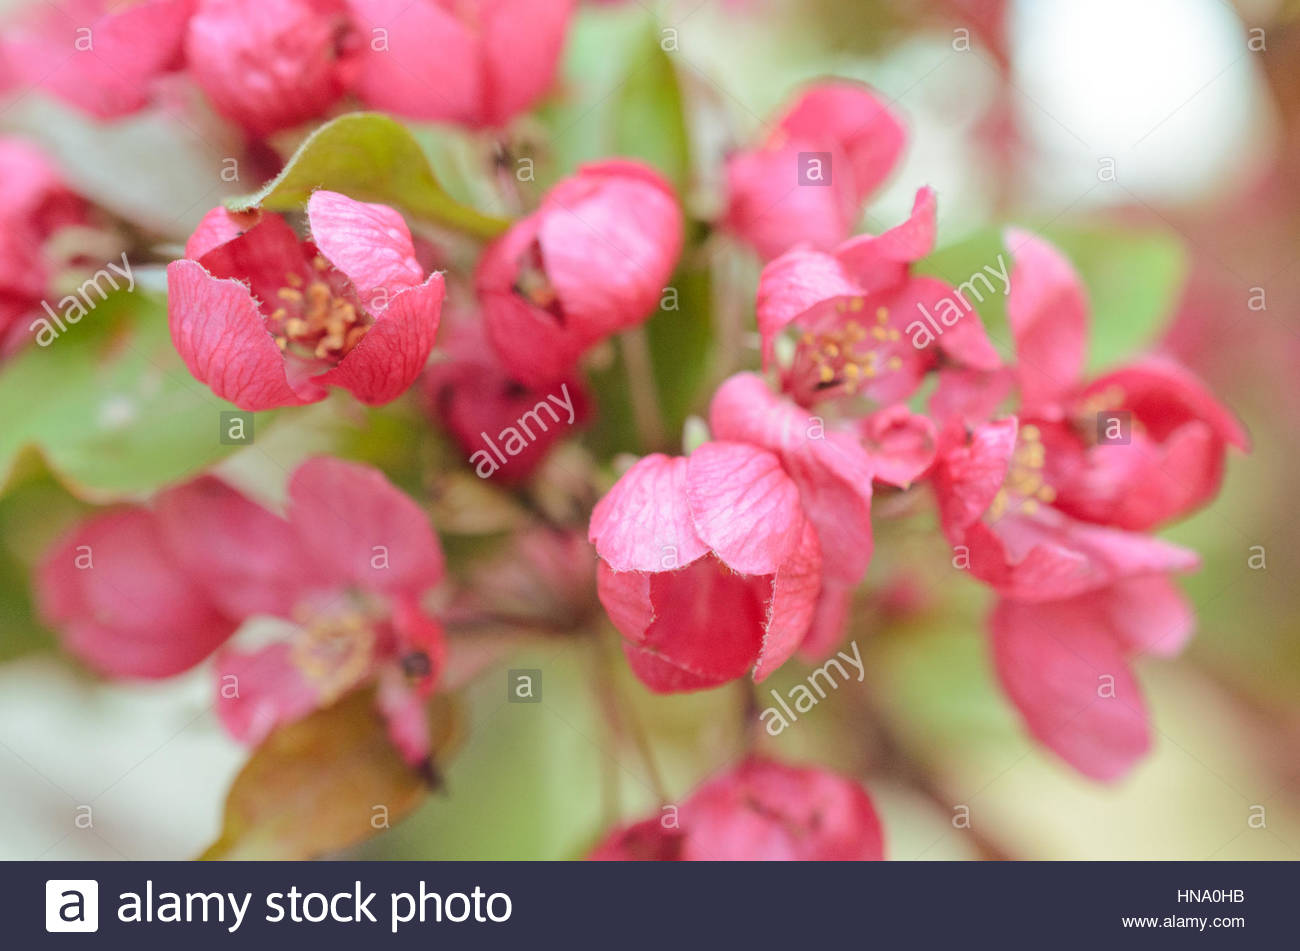 pink flowers of apple - Stock Image